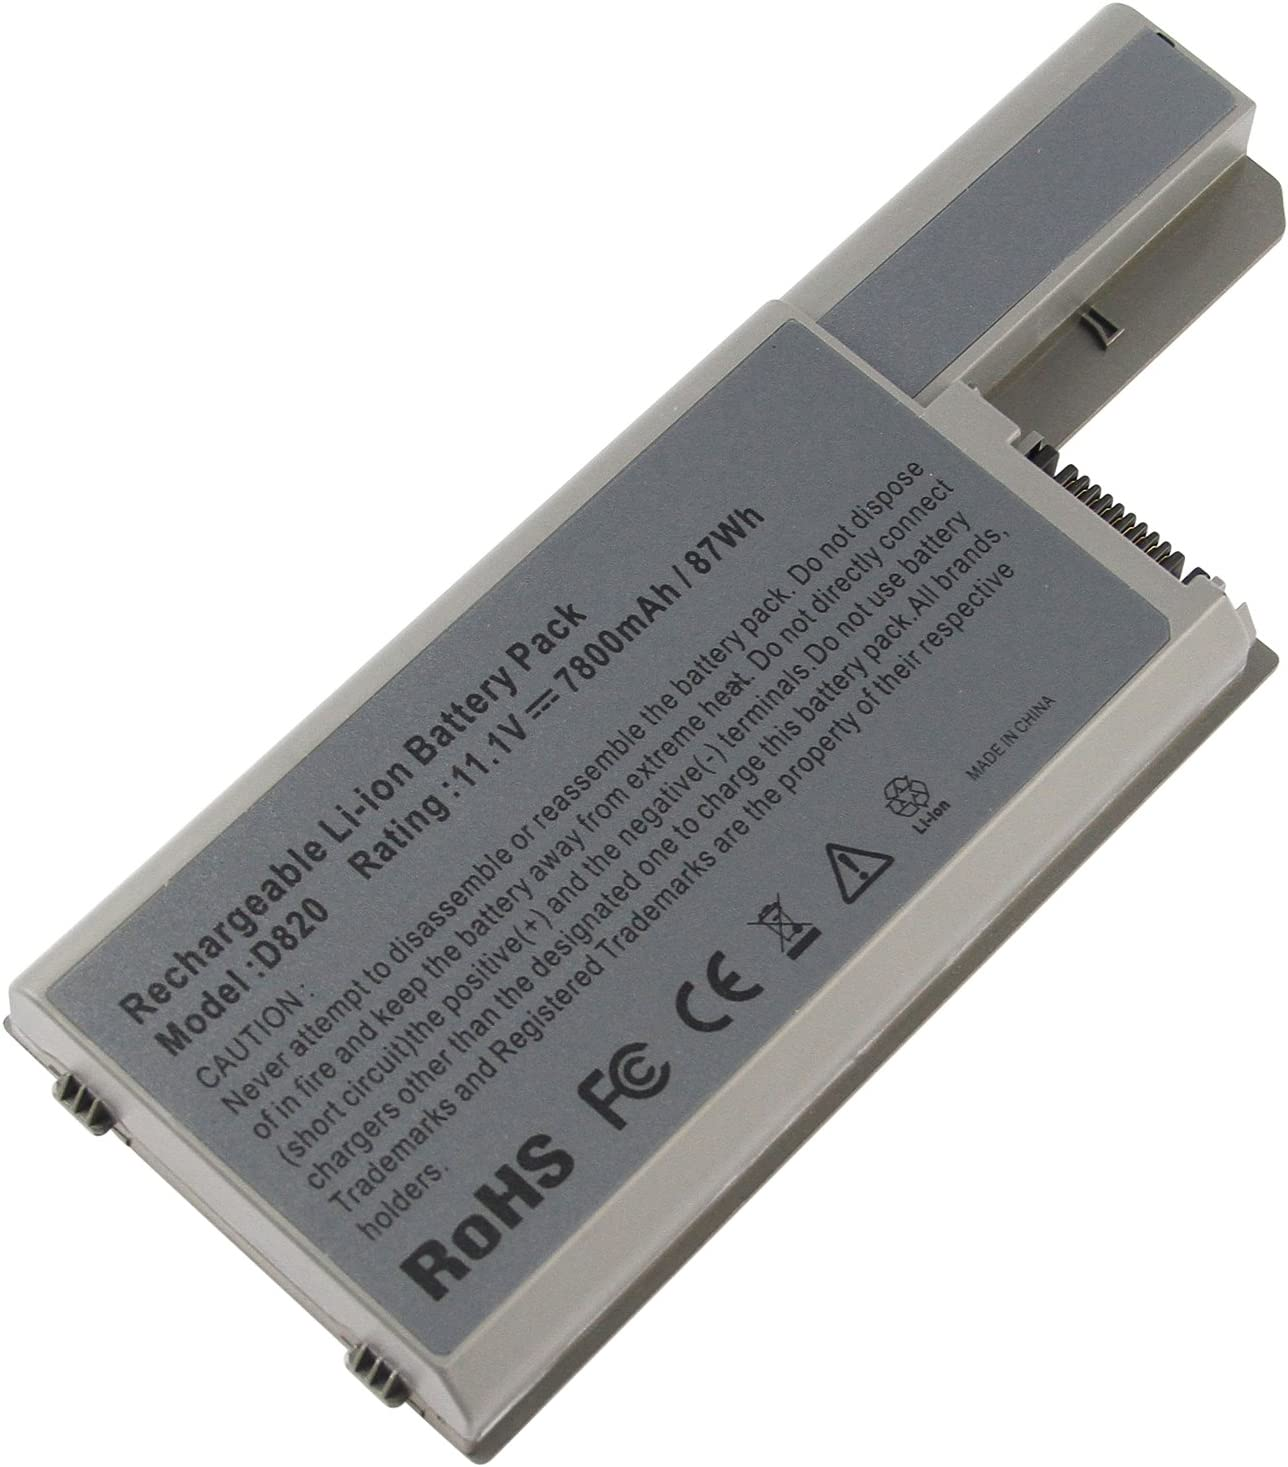 AC Doctor INC Laptop Battery for Dell Studio 17 1745 1747 1749 Series, PN: A3582355 M905P U150P W080P Y067P 0W077P, 5200mAh/11.1V/0 Cell